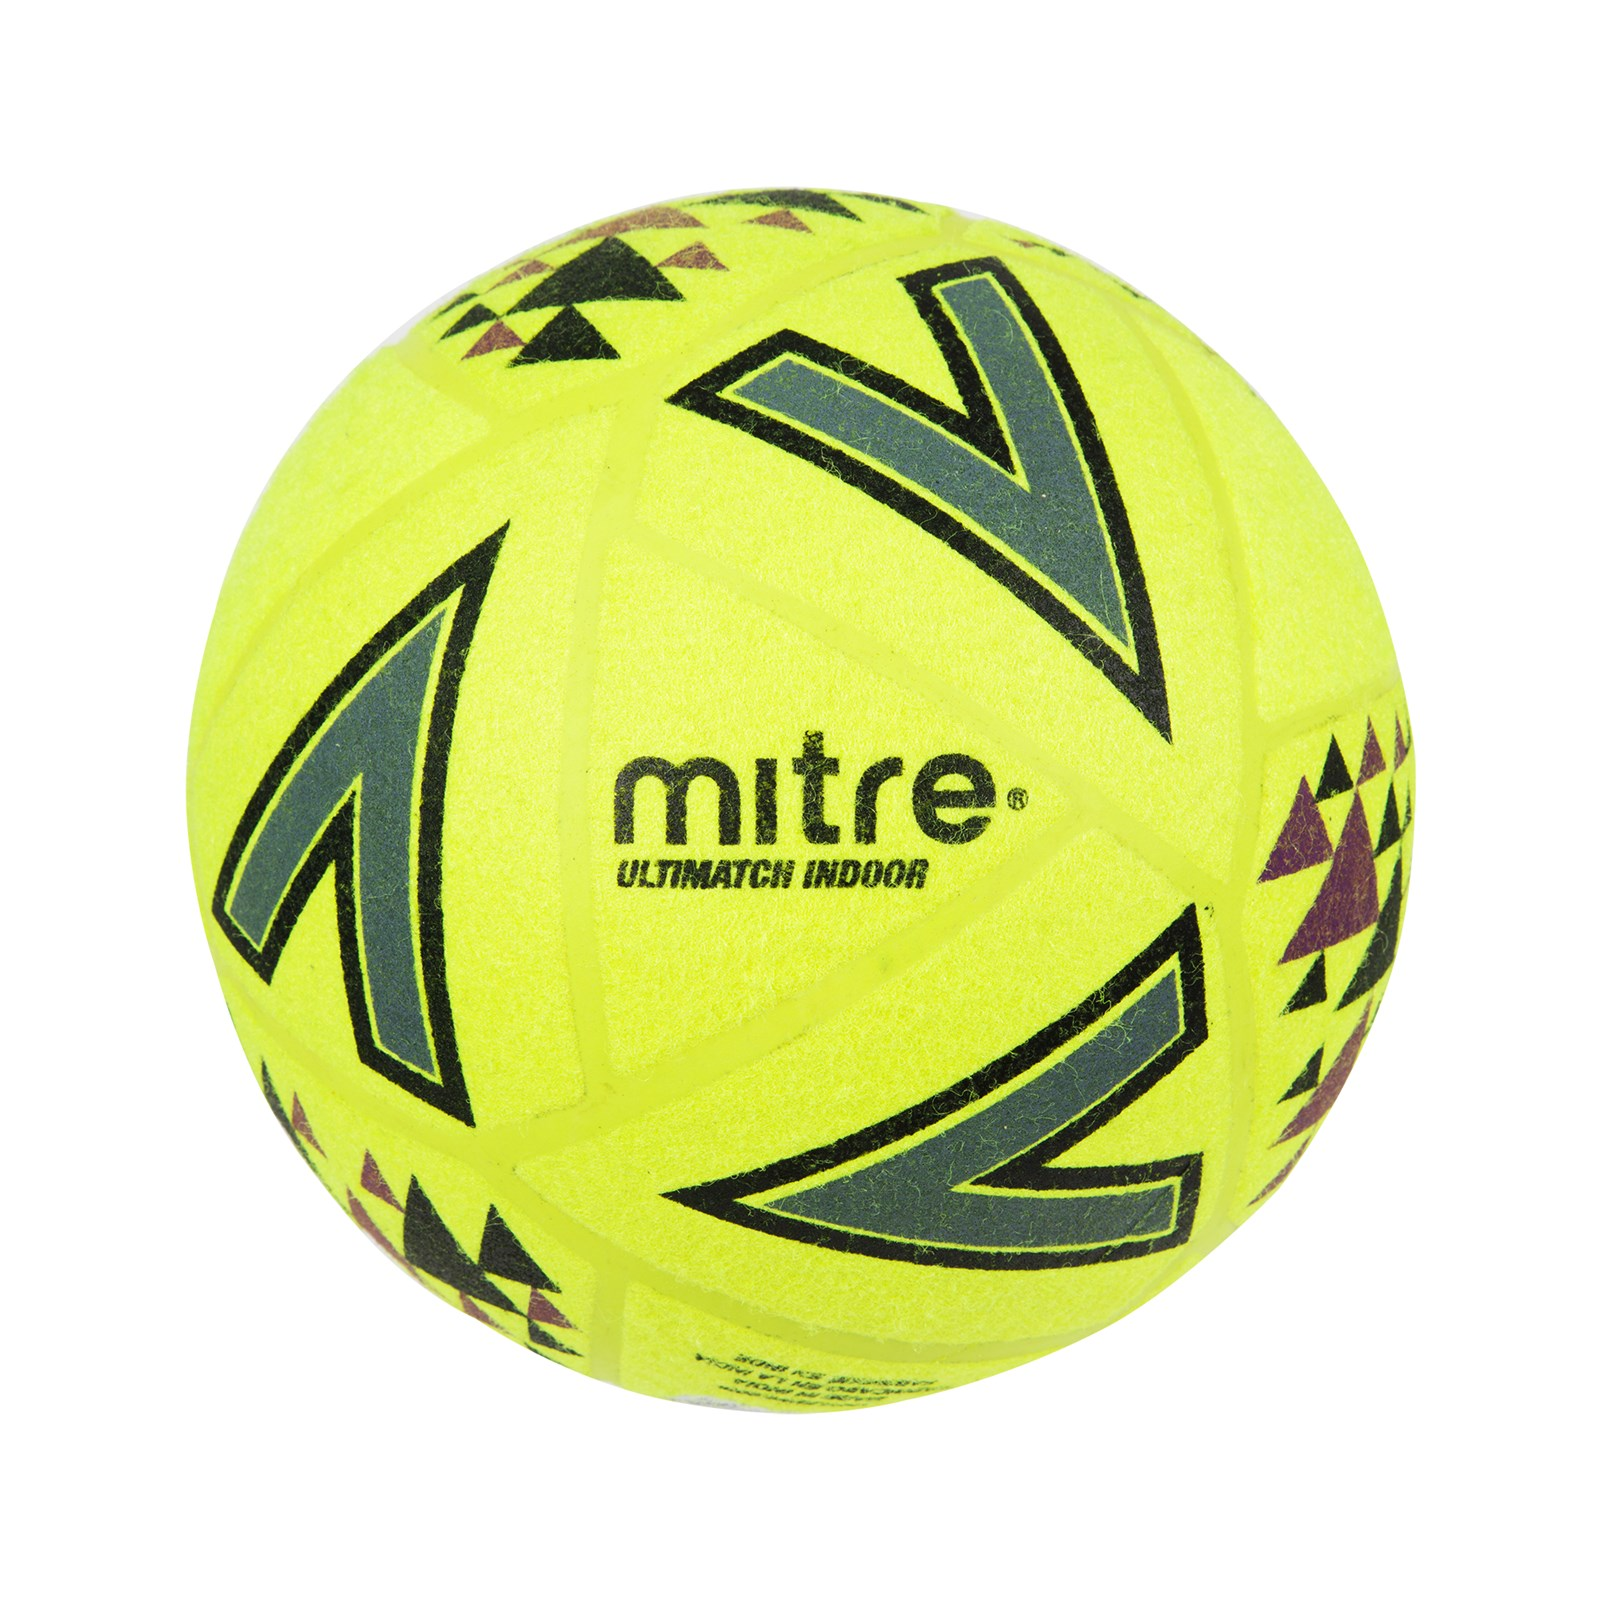 Mitre Ultimatch Indoor Football - Size 4 - Yellow/Black